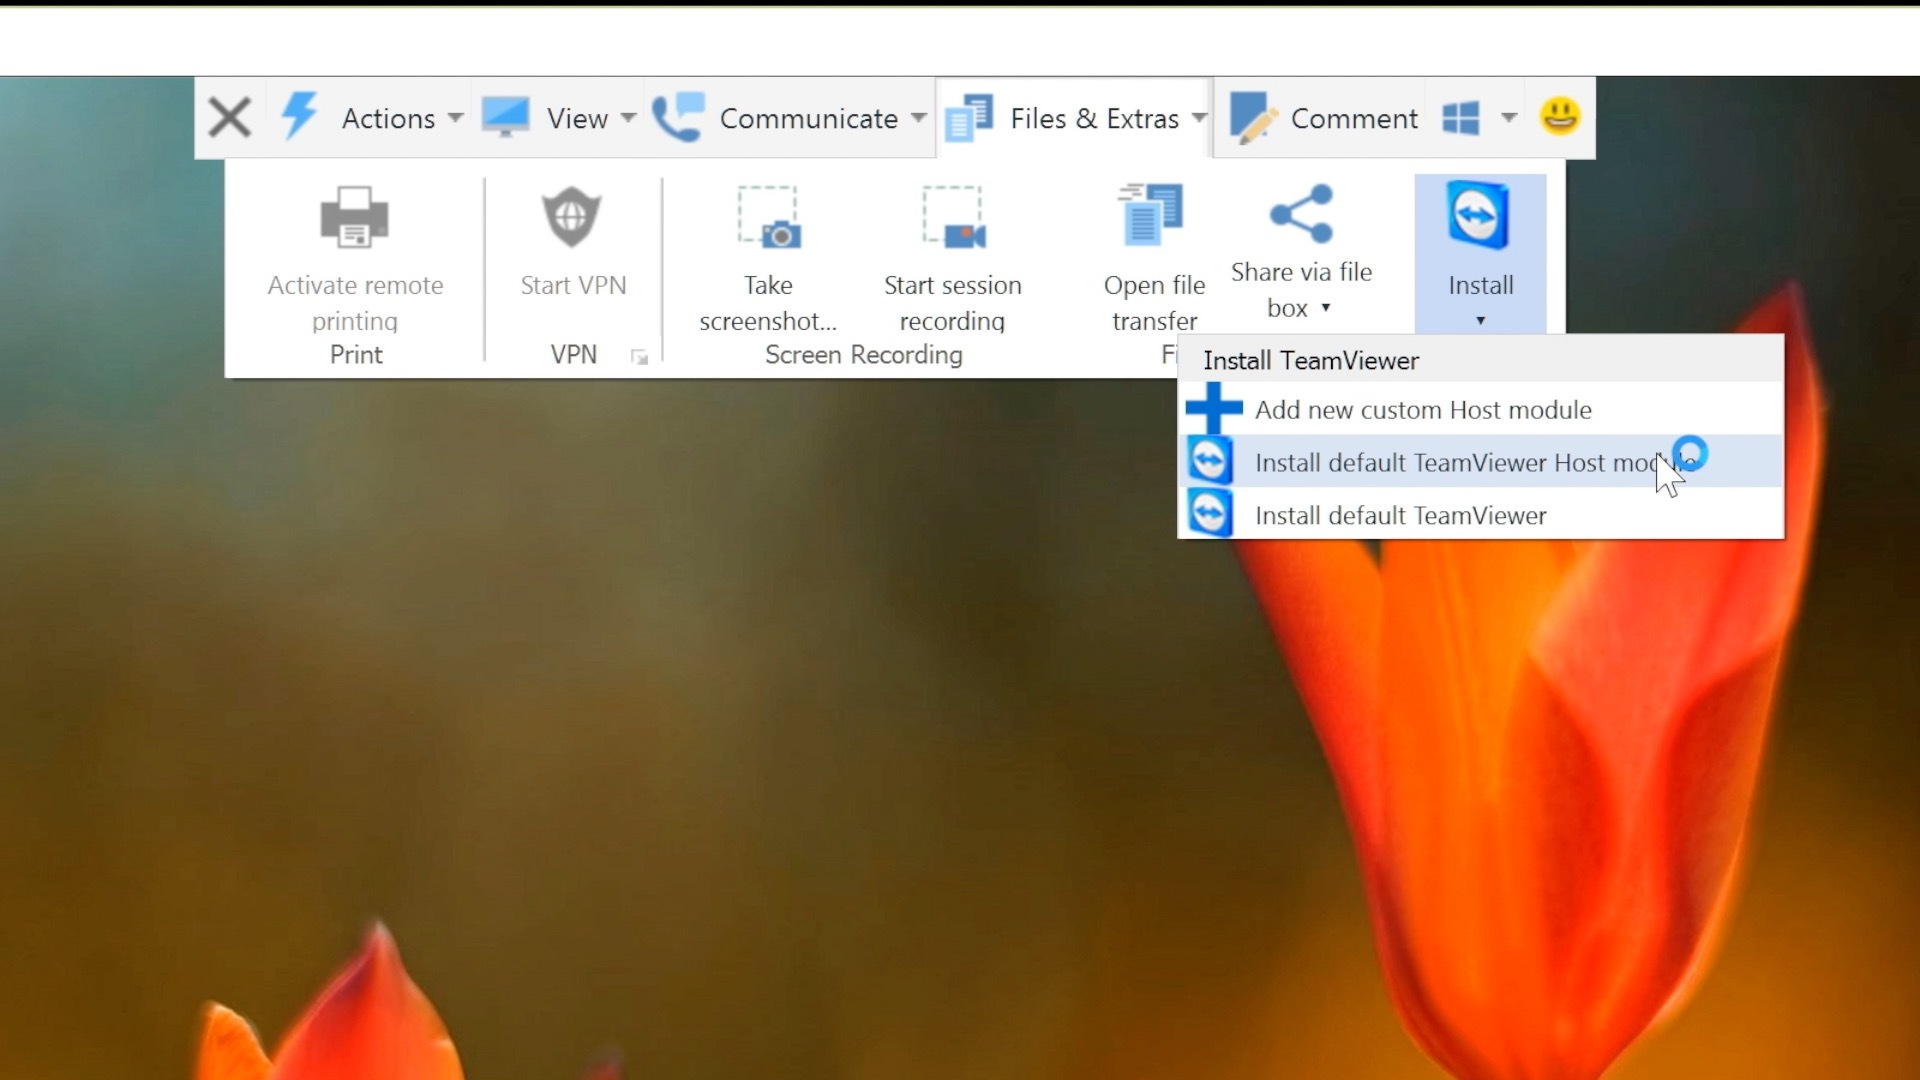 TeamViewer 11 - Remotely Install Host Module